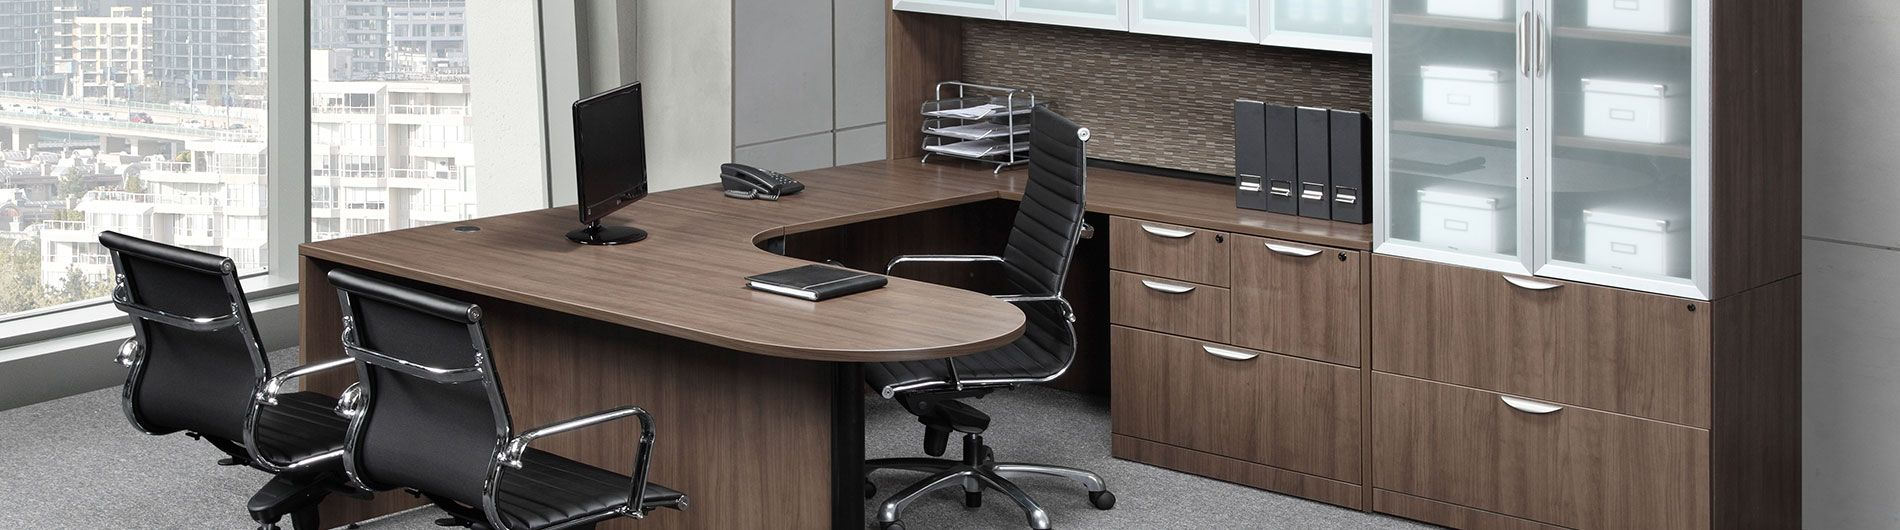 Awe Inspiring New Used Office Furniture Santa Clara Bay Area Office Interior Design Ideas Gresisoteloinfo